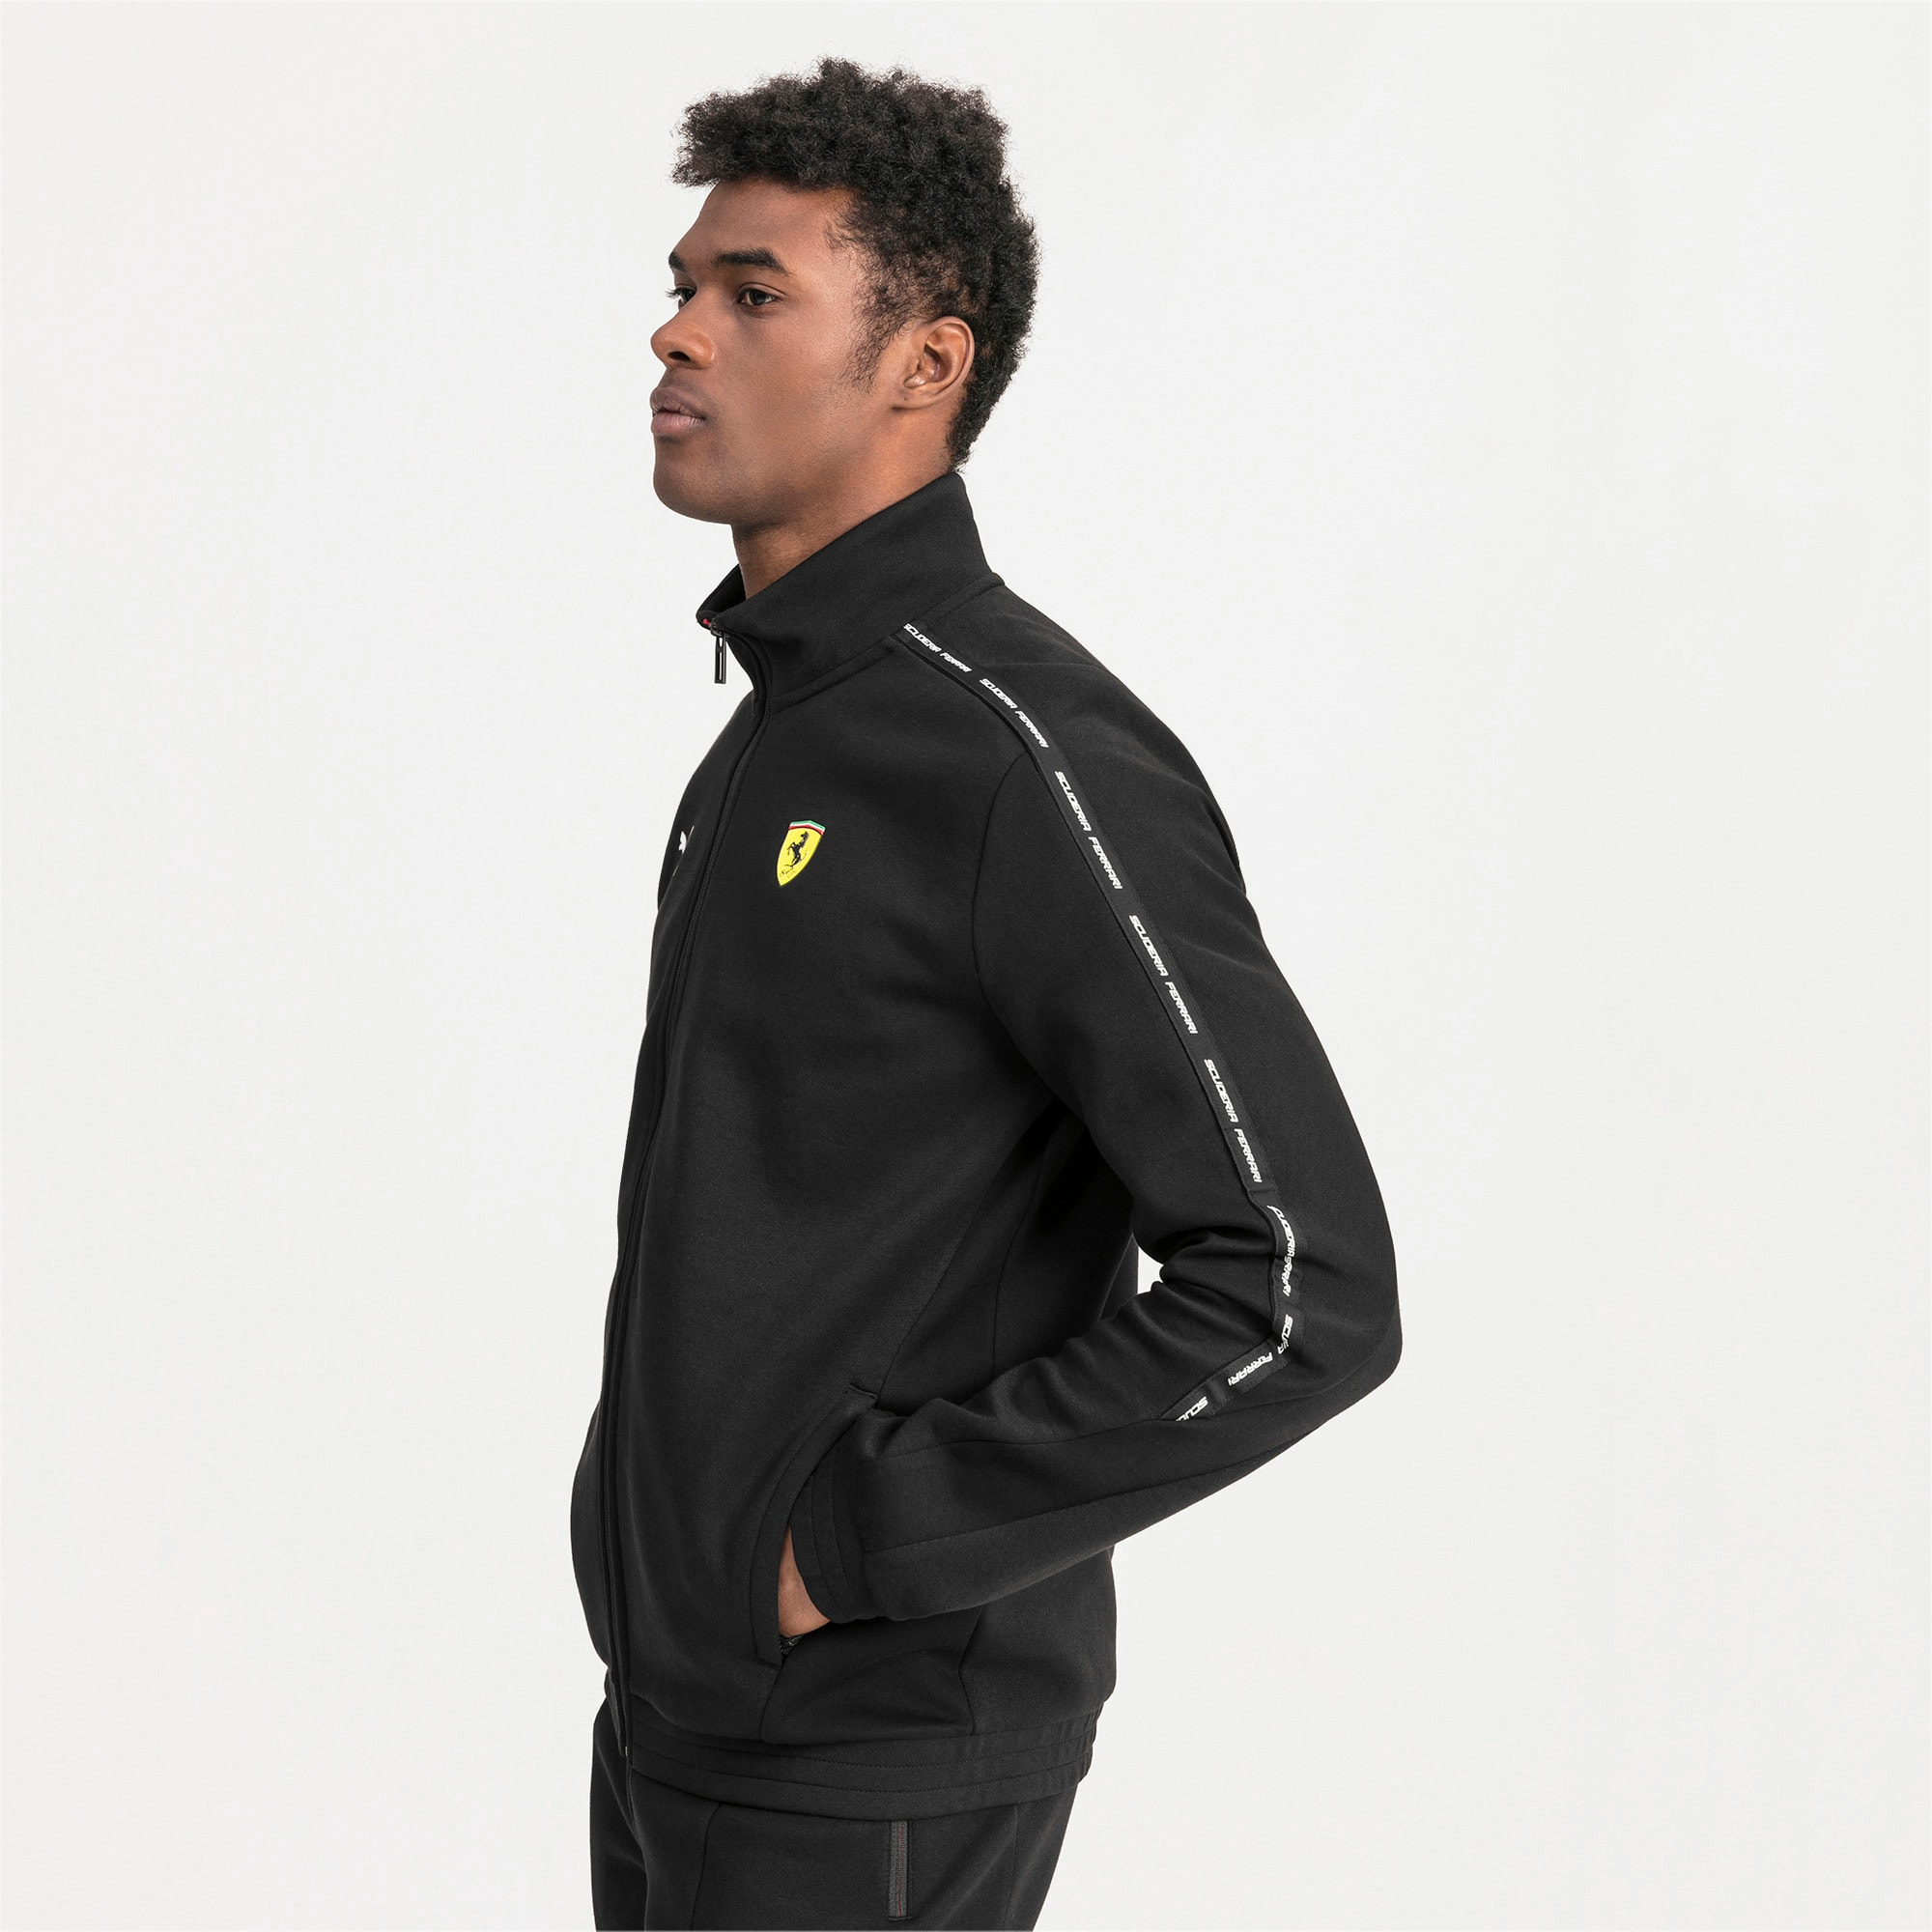 Thumbnail 1 of Ferrari Men's Sweat Jacket, Puma Black, medium